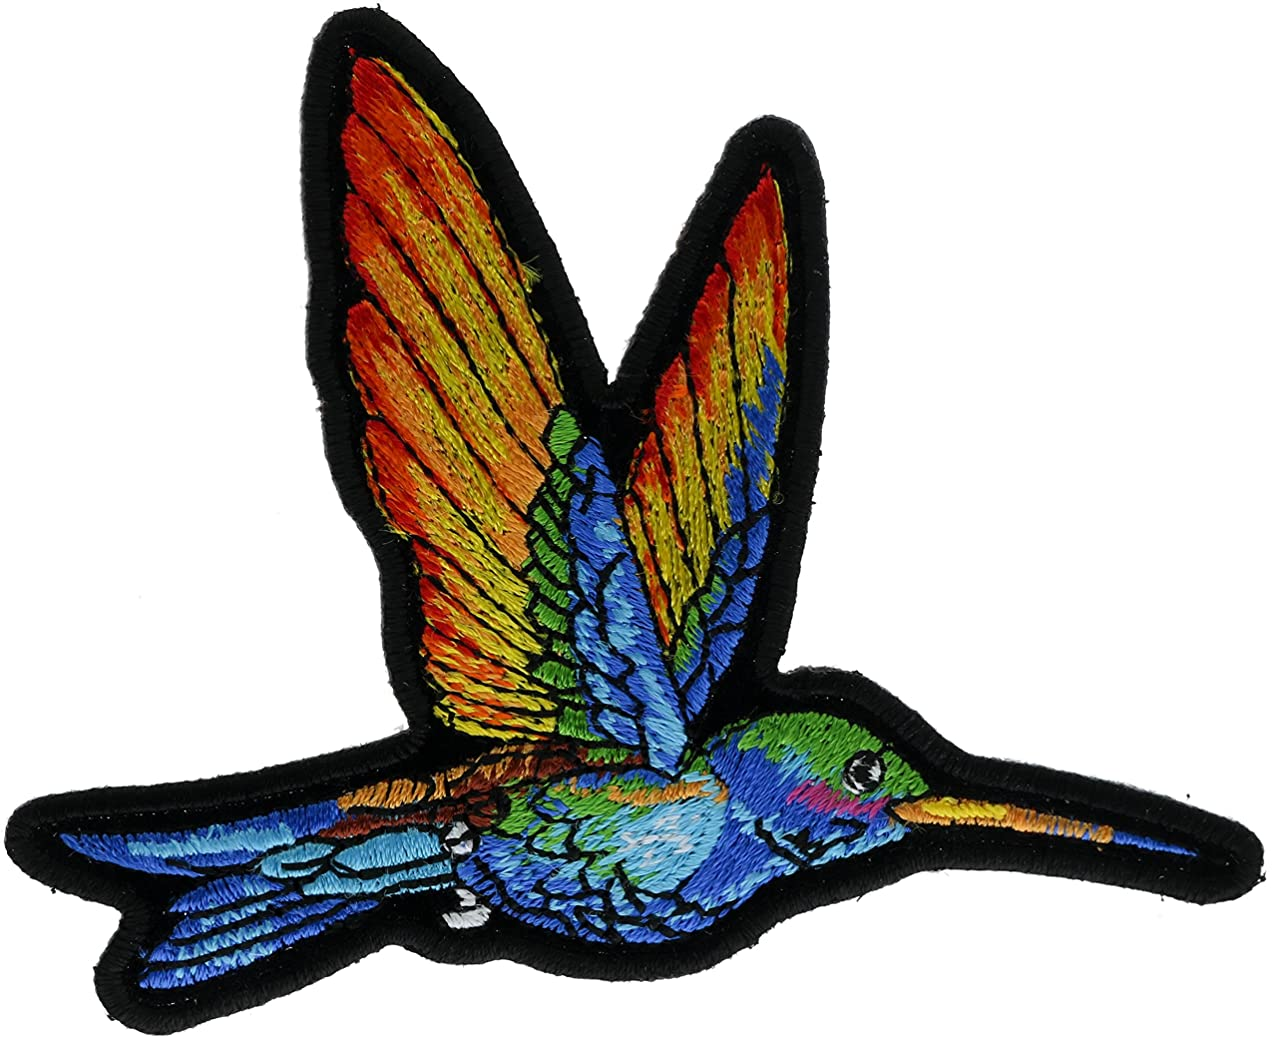 Humming Bird Colorful 4 inch Embroidered Patch NOVPAhummingbird